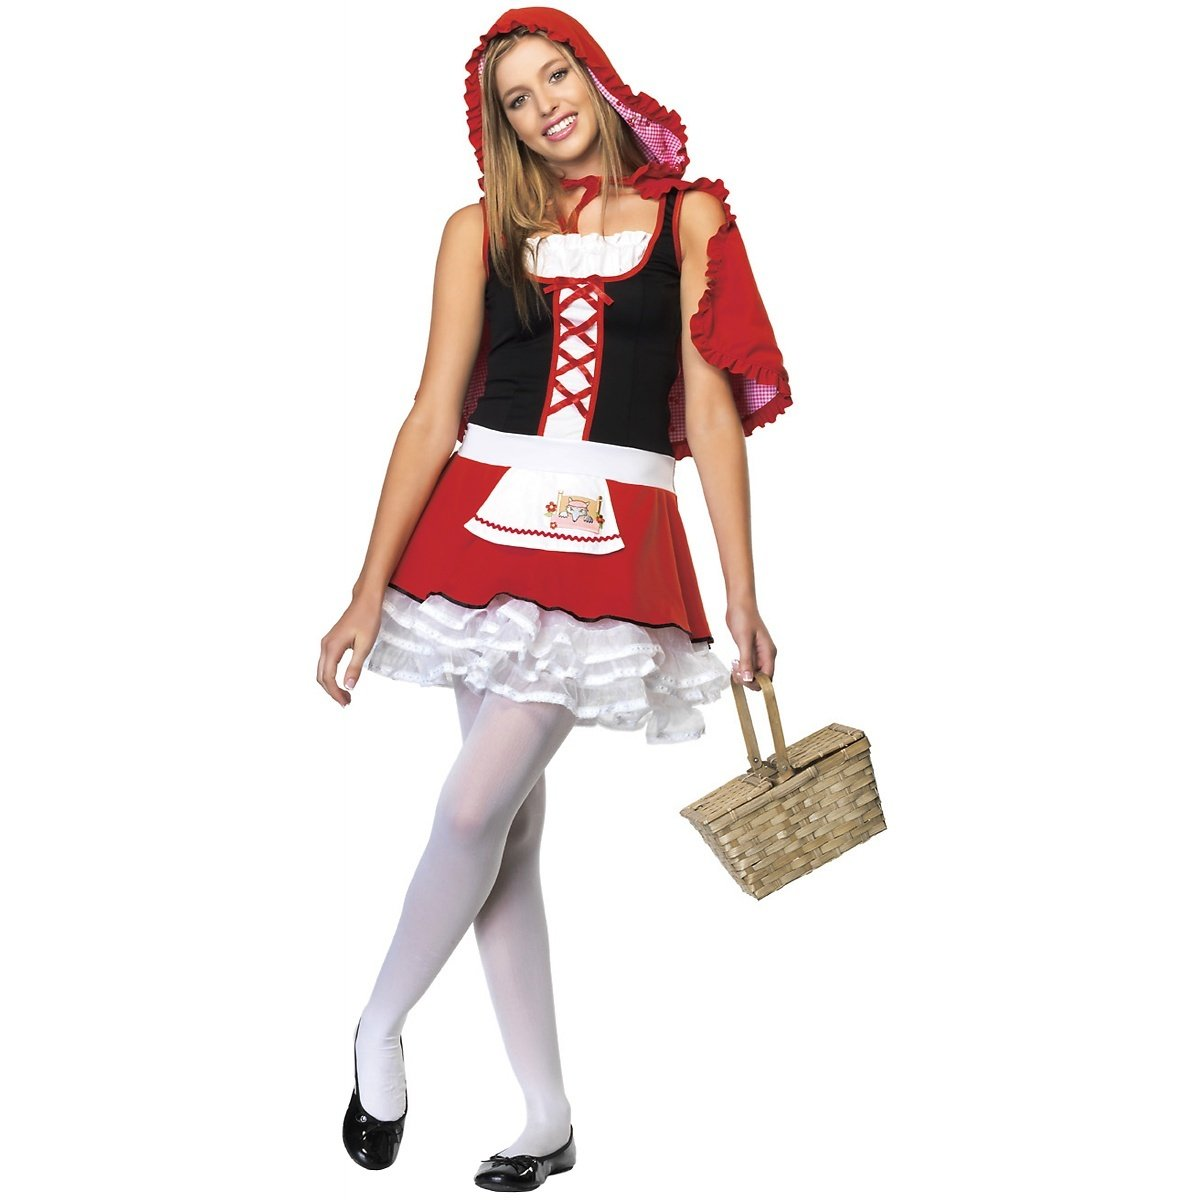 Costumes For All Occasions Uaj48033Sd Lil Miss Red Small Medium